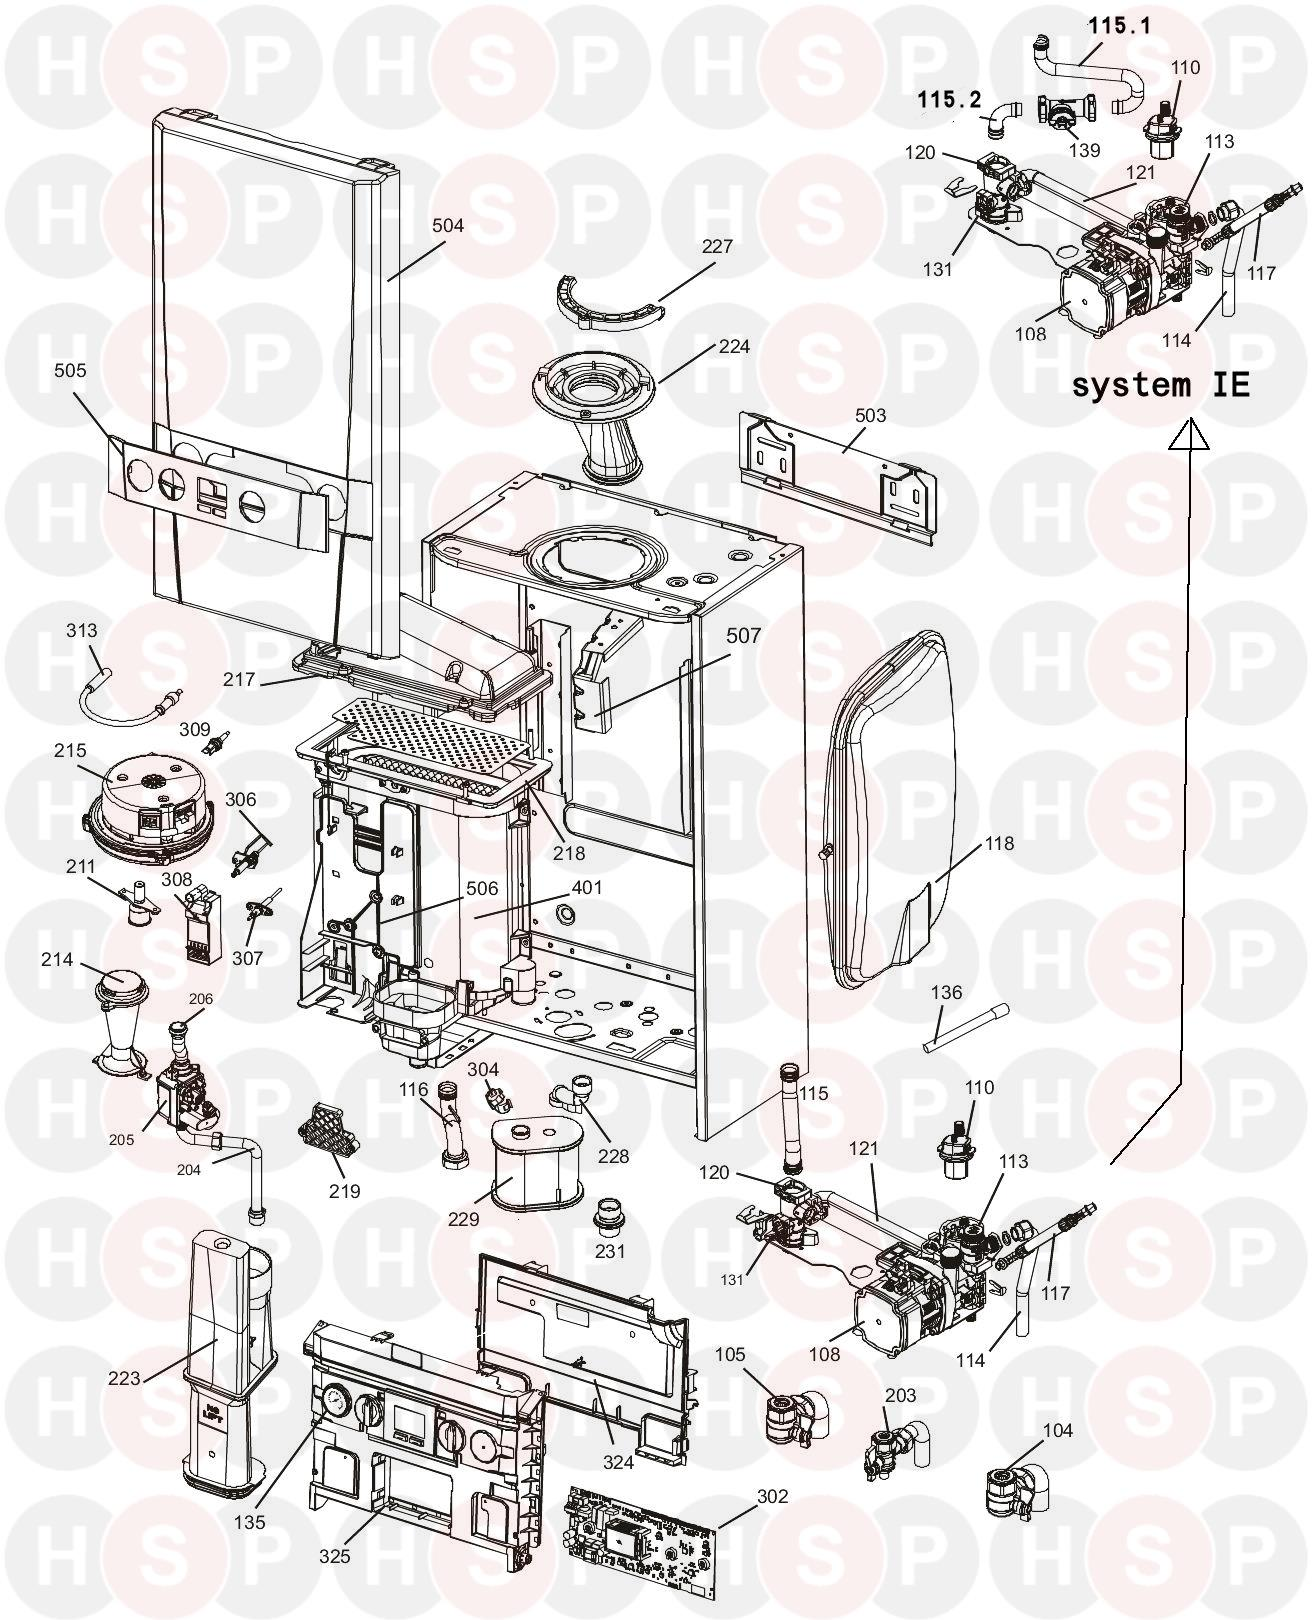 Ideal LOGIC + SYSTEM S30 (EXPLODED VIEW)Diagram | Heating ...